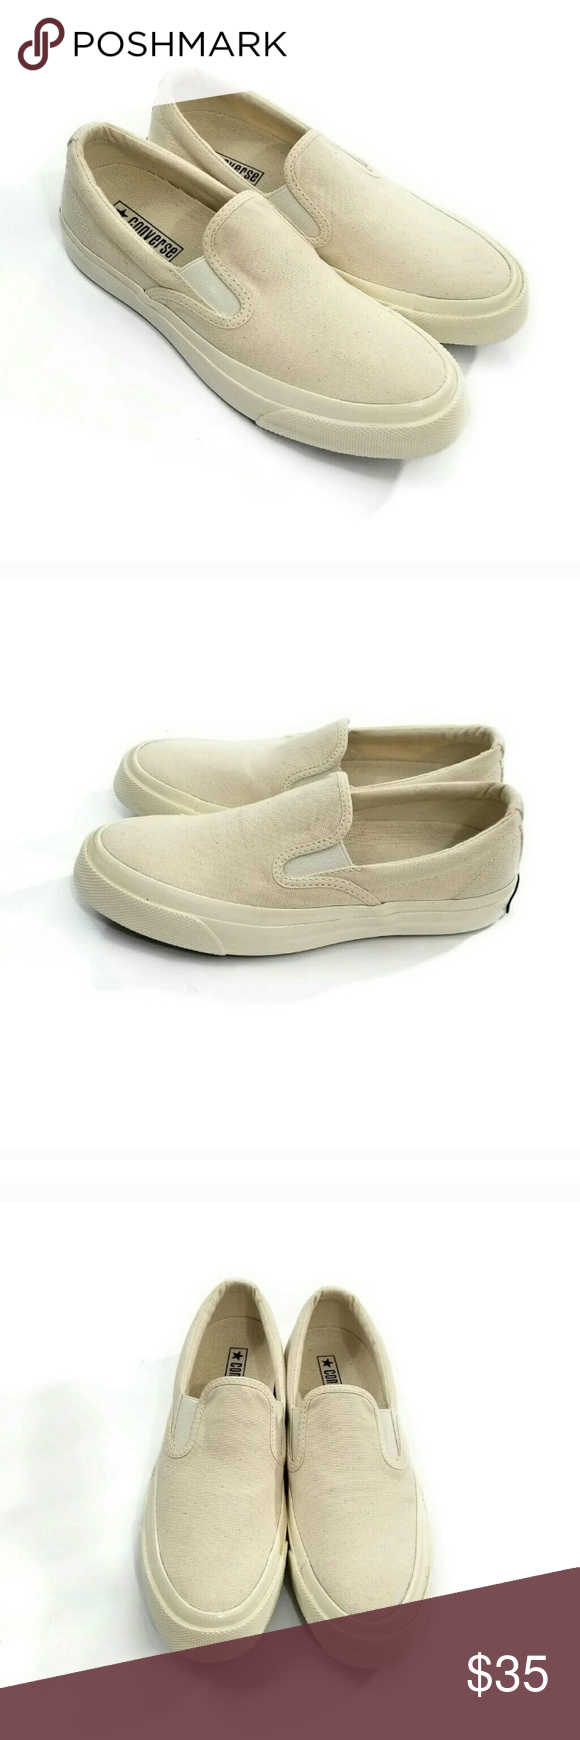 f141ecbf78bfd6 Converse cream colored slip ons So cute but sadly too big for me. US men s  6